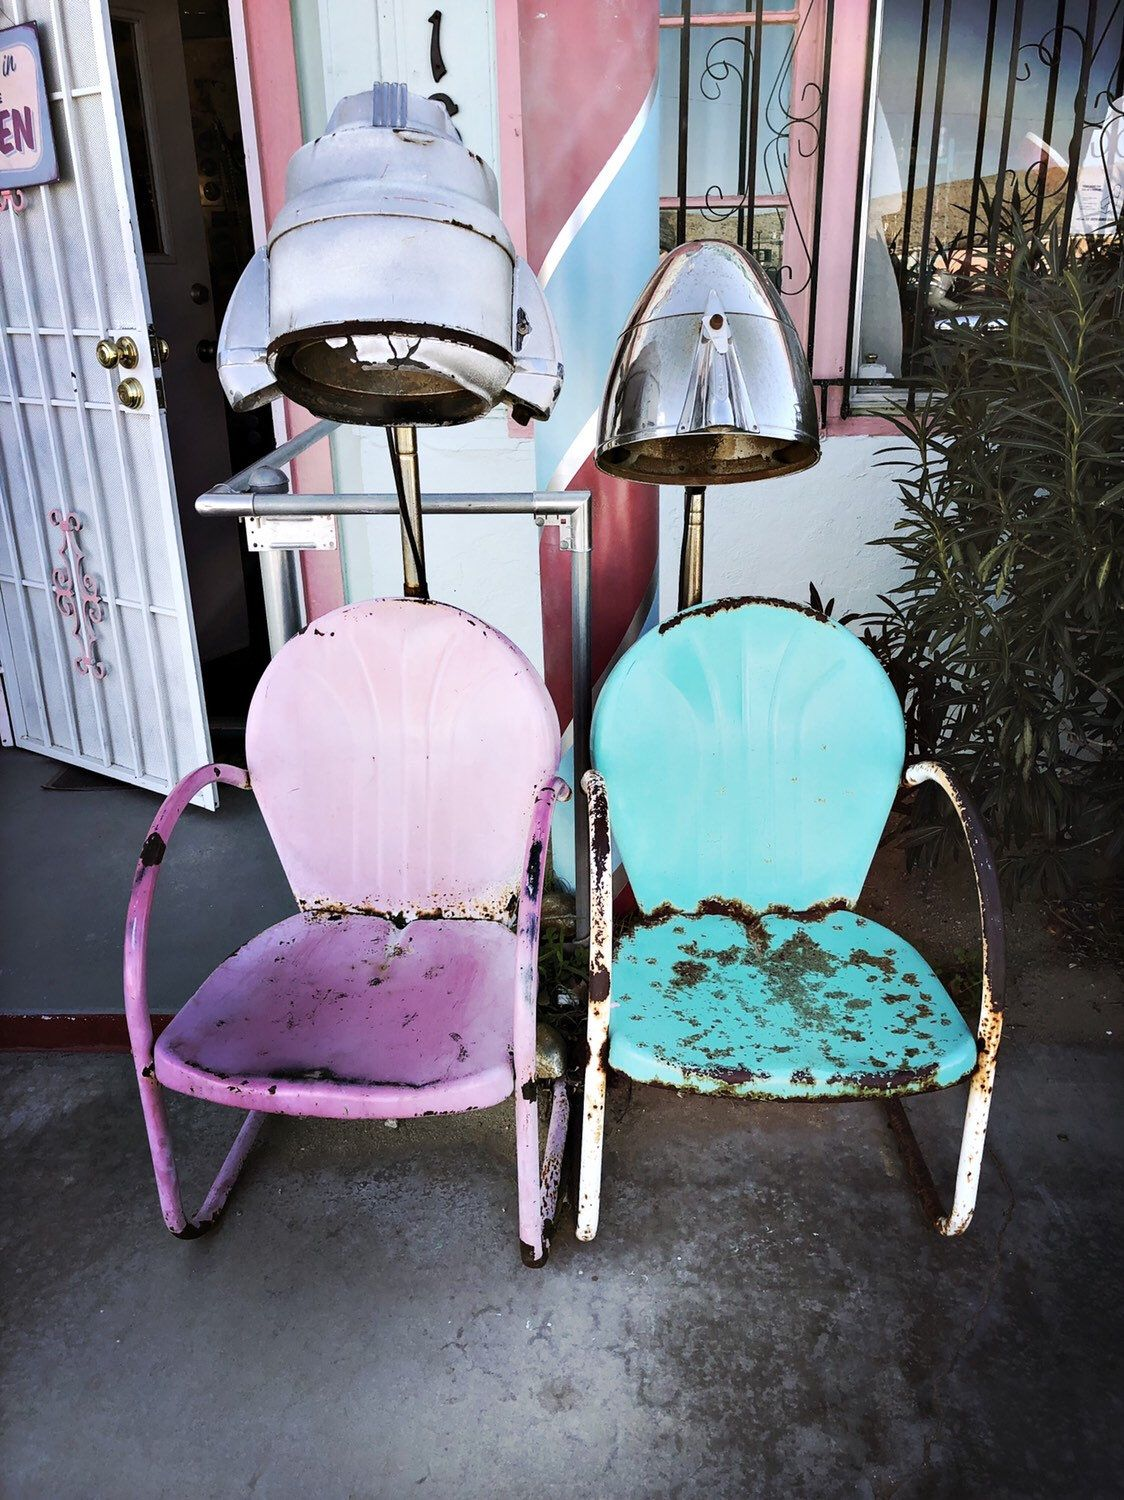 Pin by Taylor Pressley on home Turquoise chair, Vintage